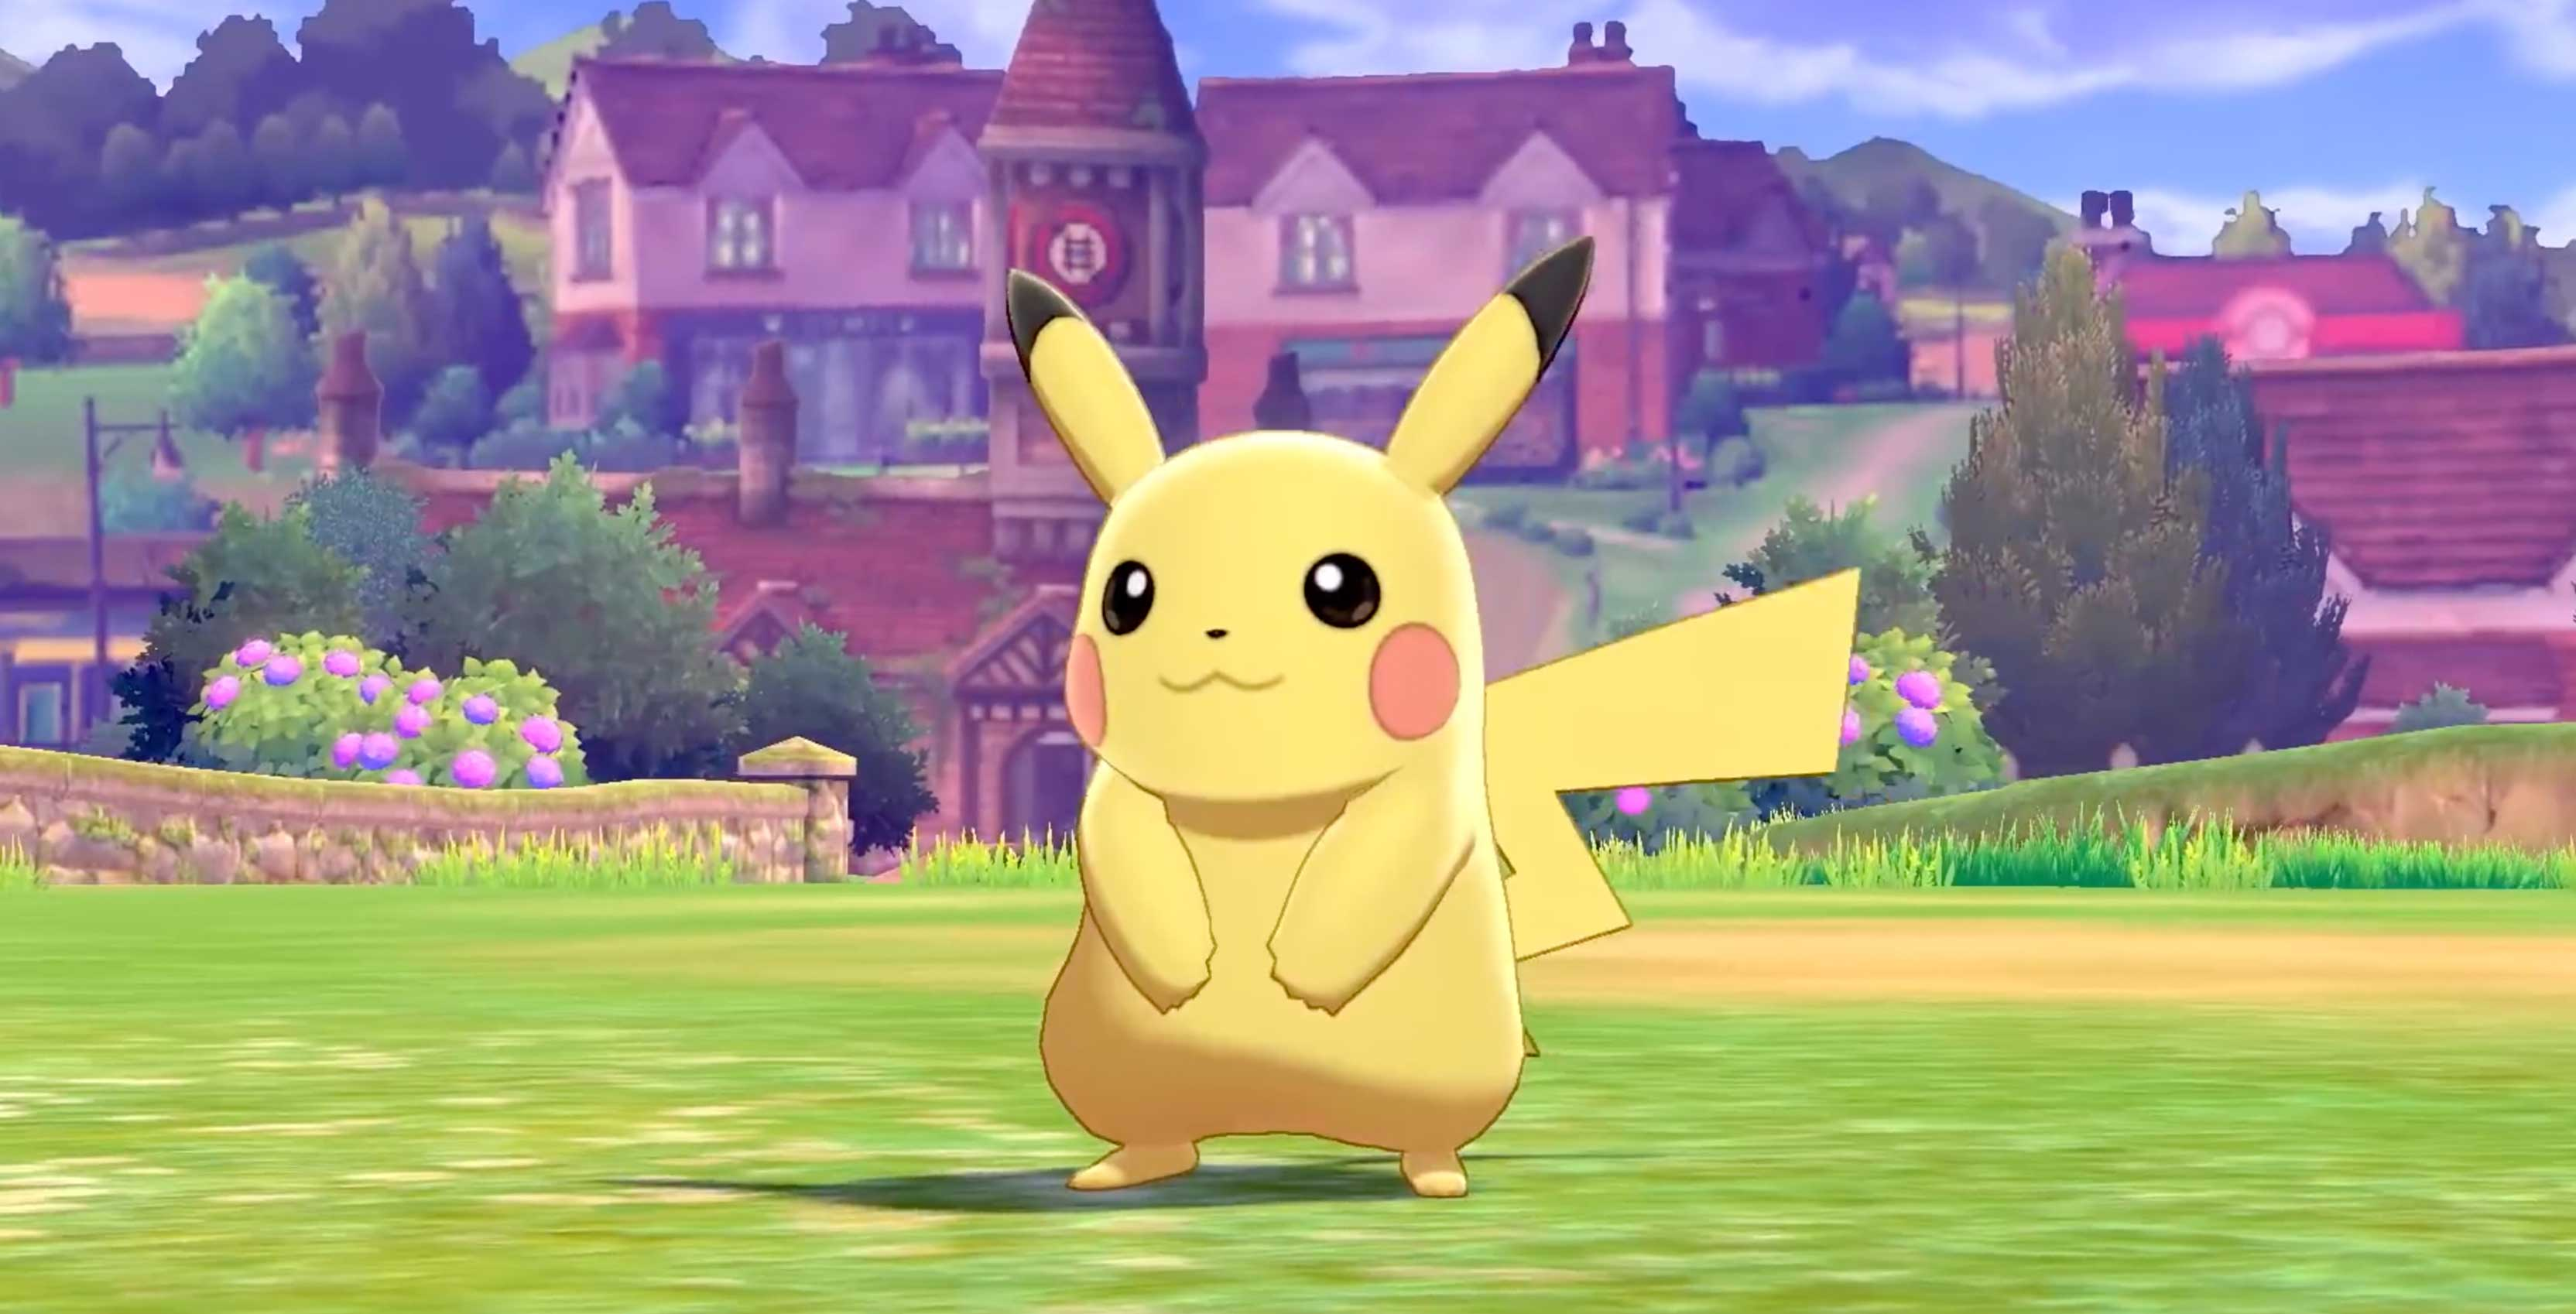 Nintendo Reveals More Pokemon Sword And Shield Information At E3 2019